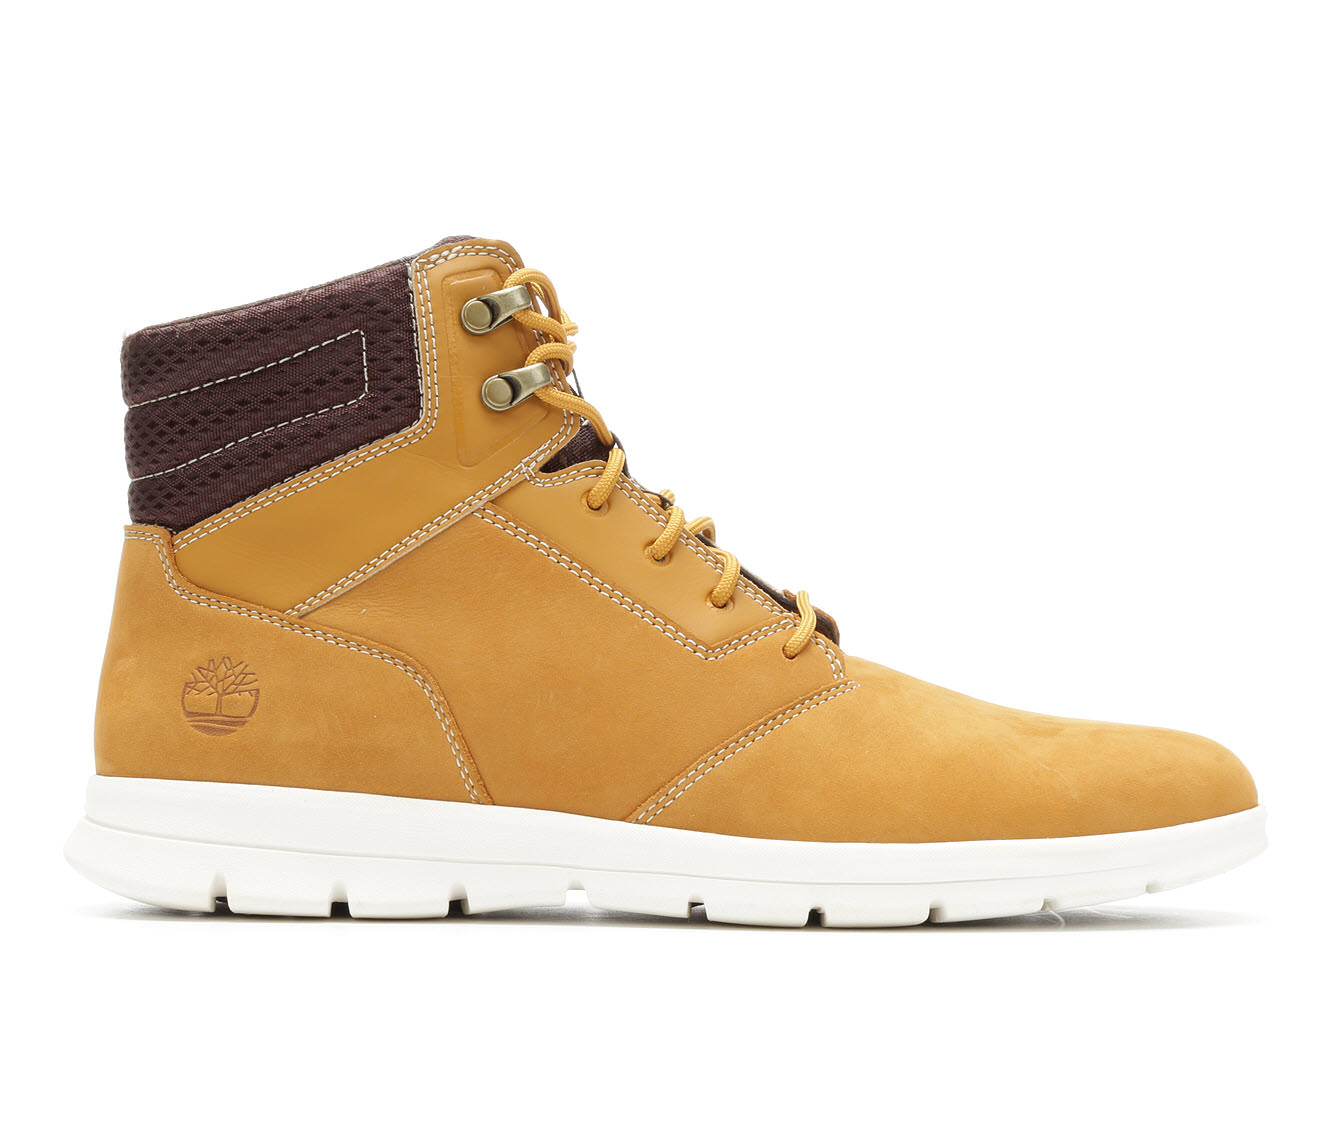 Timberland Graydon Sneaker Men's Boots (Brown Leather)